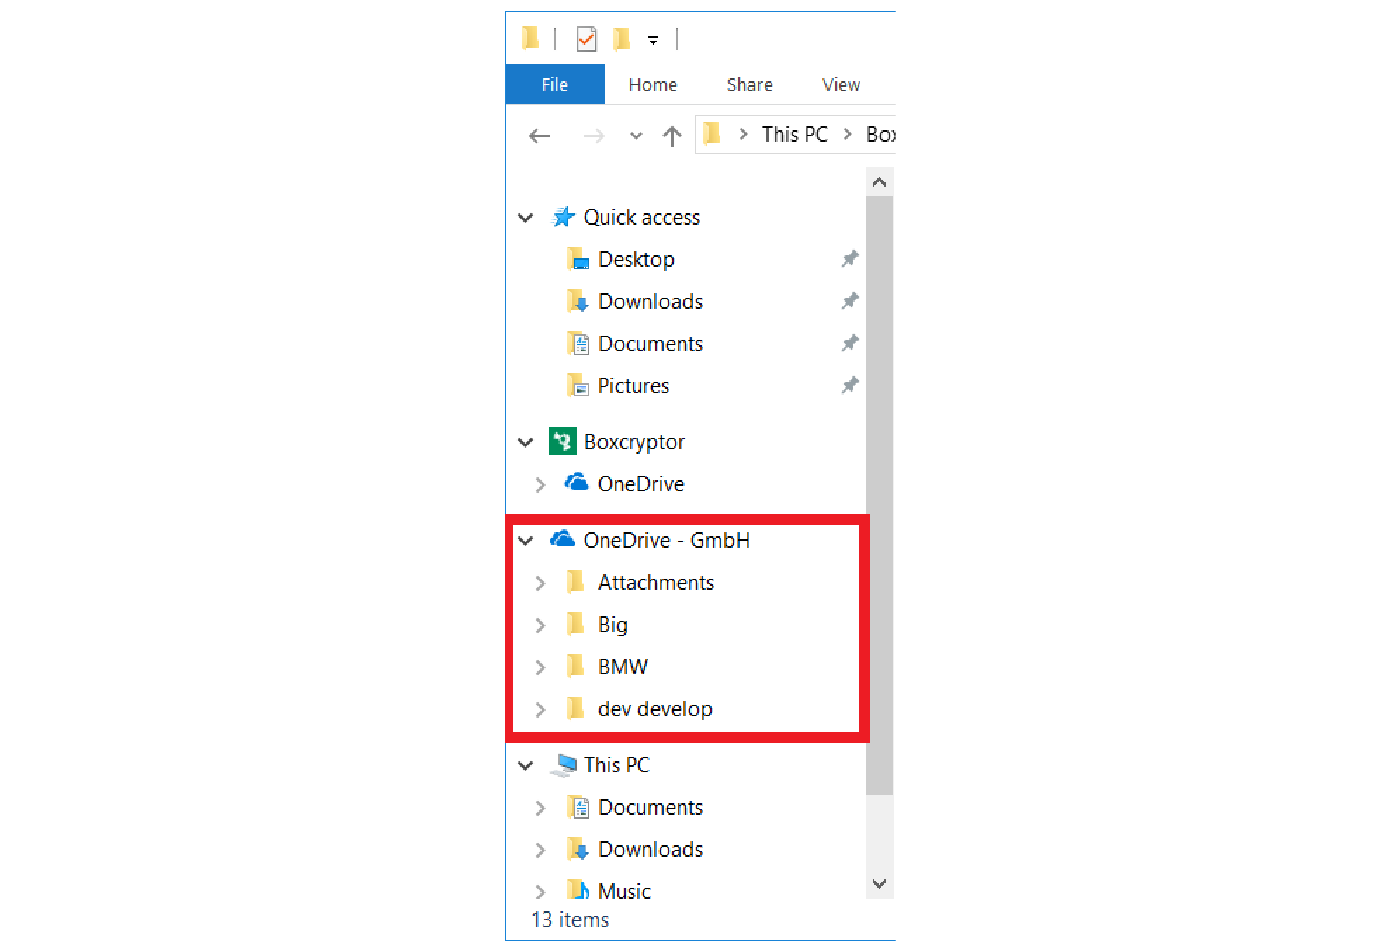 OneDrive for Business client in Windows Explorer